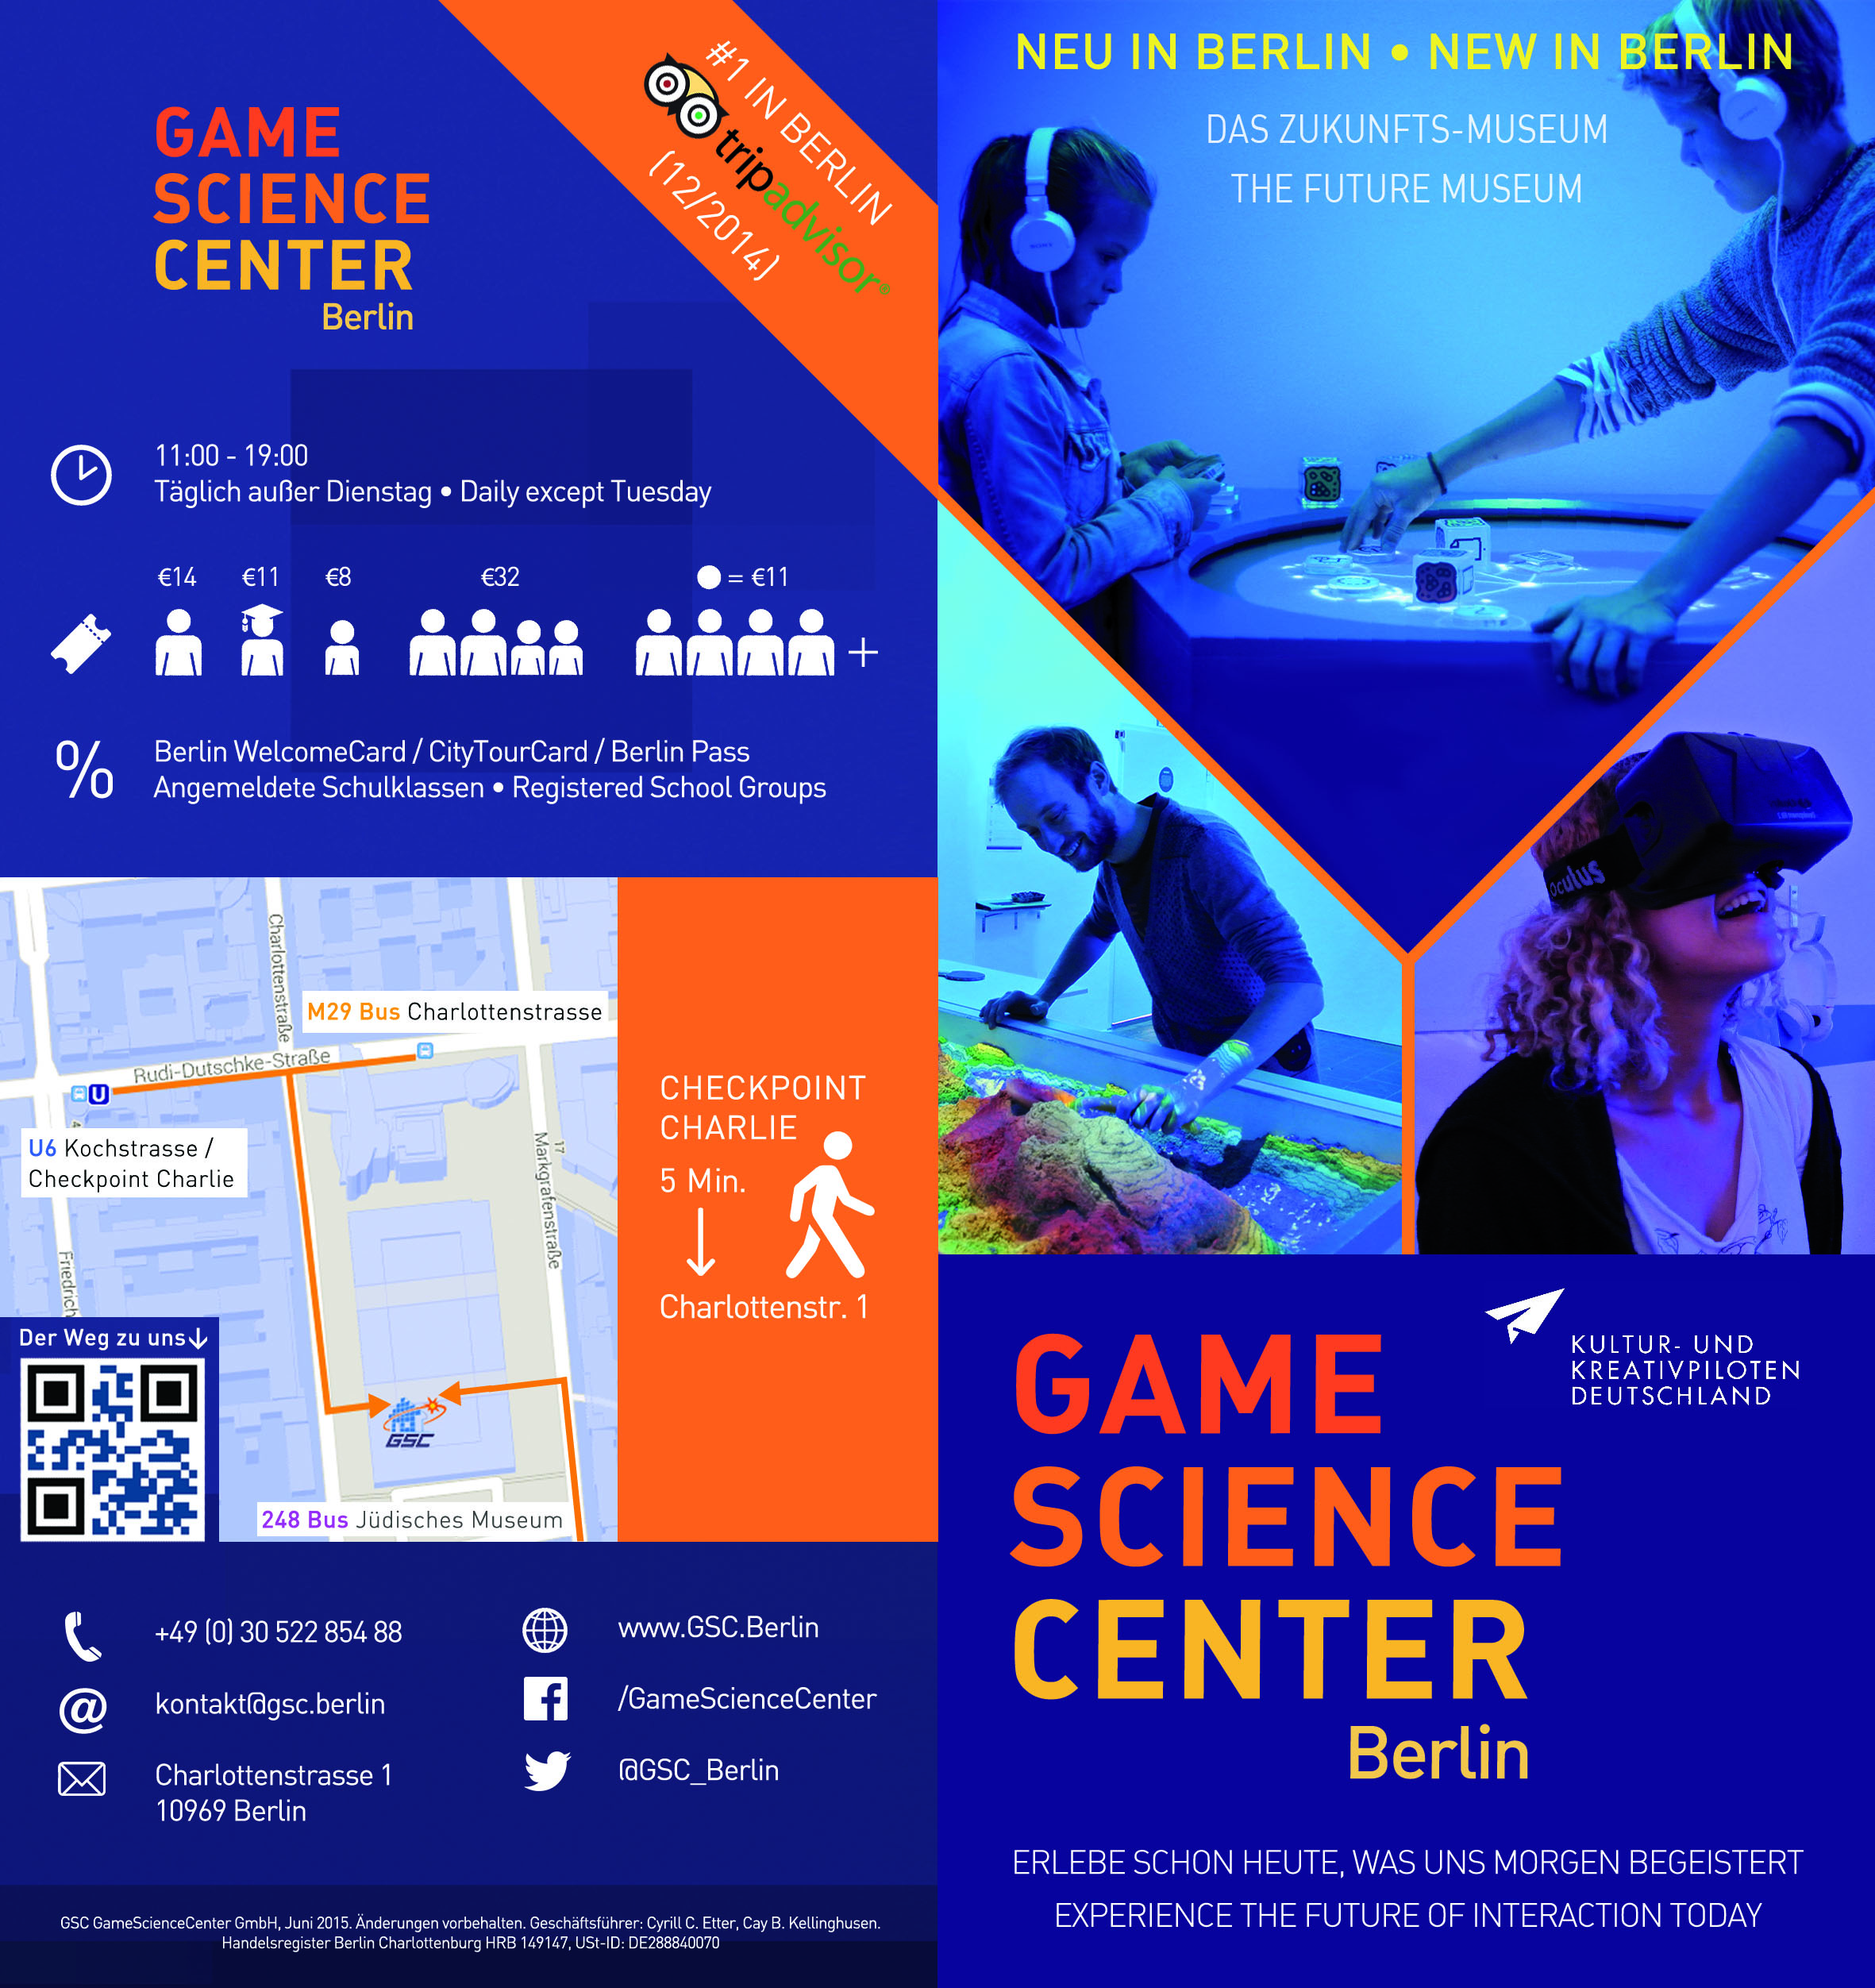 Flyer for the Game Science Center (2015) - outside